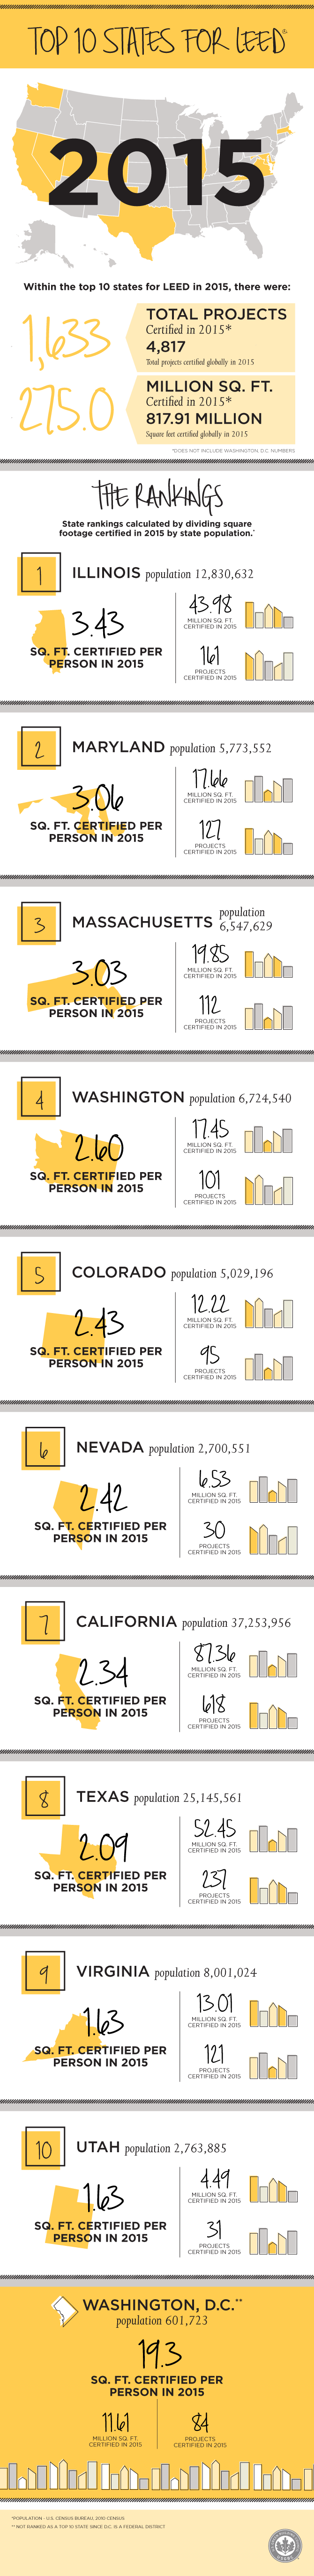 Worth Checking Out Infographic Top 10 States For Leed In 2015 On